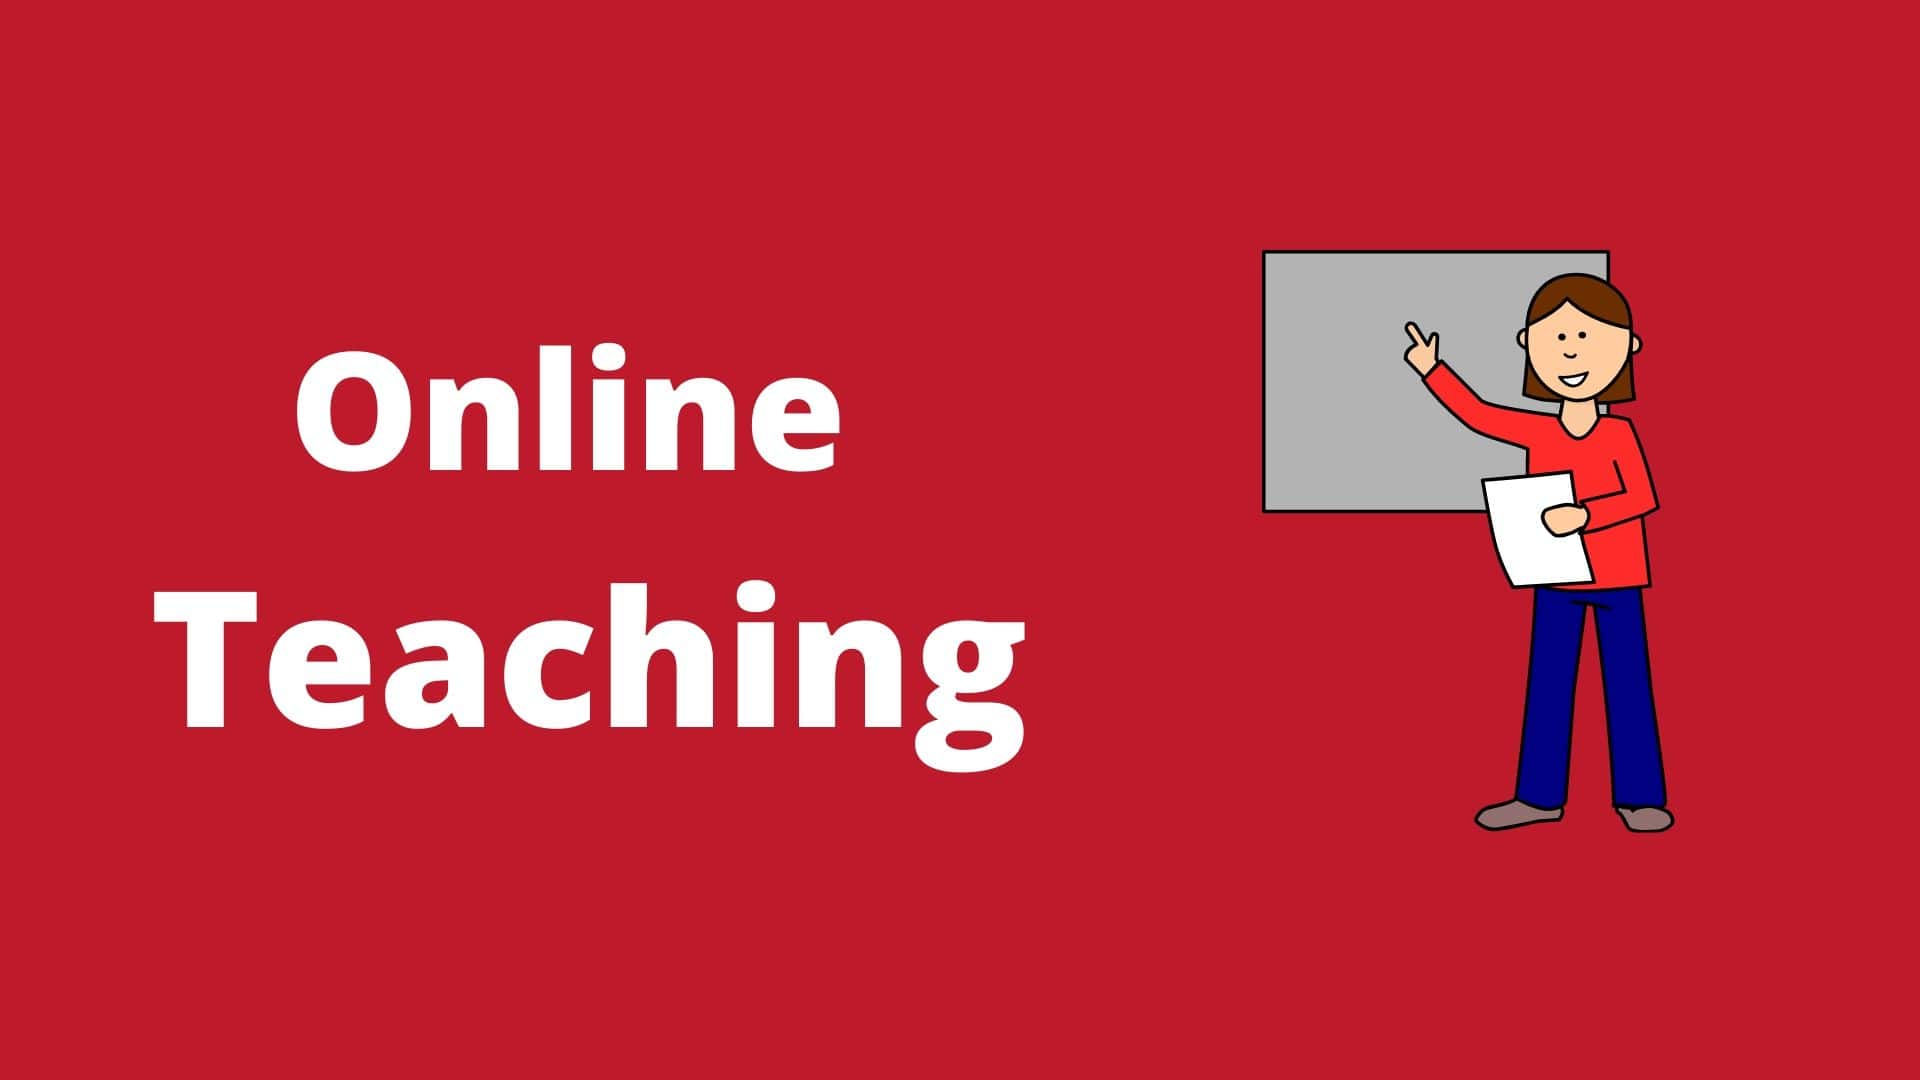 online teaching - home based business idea